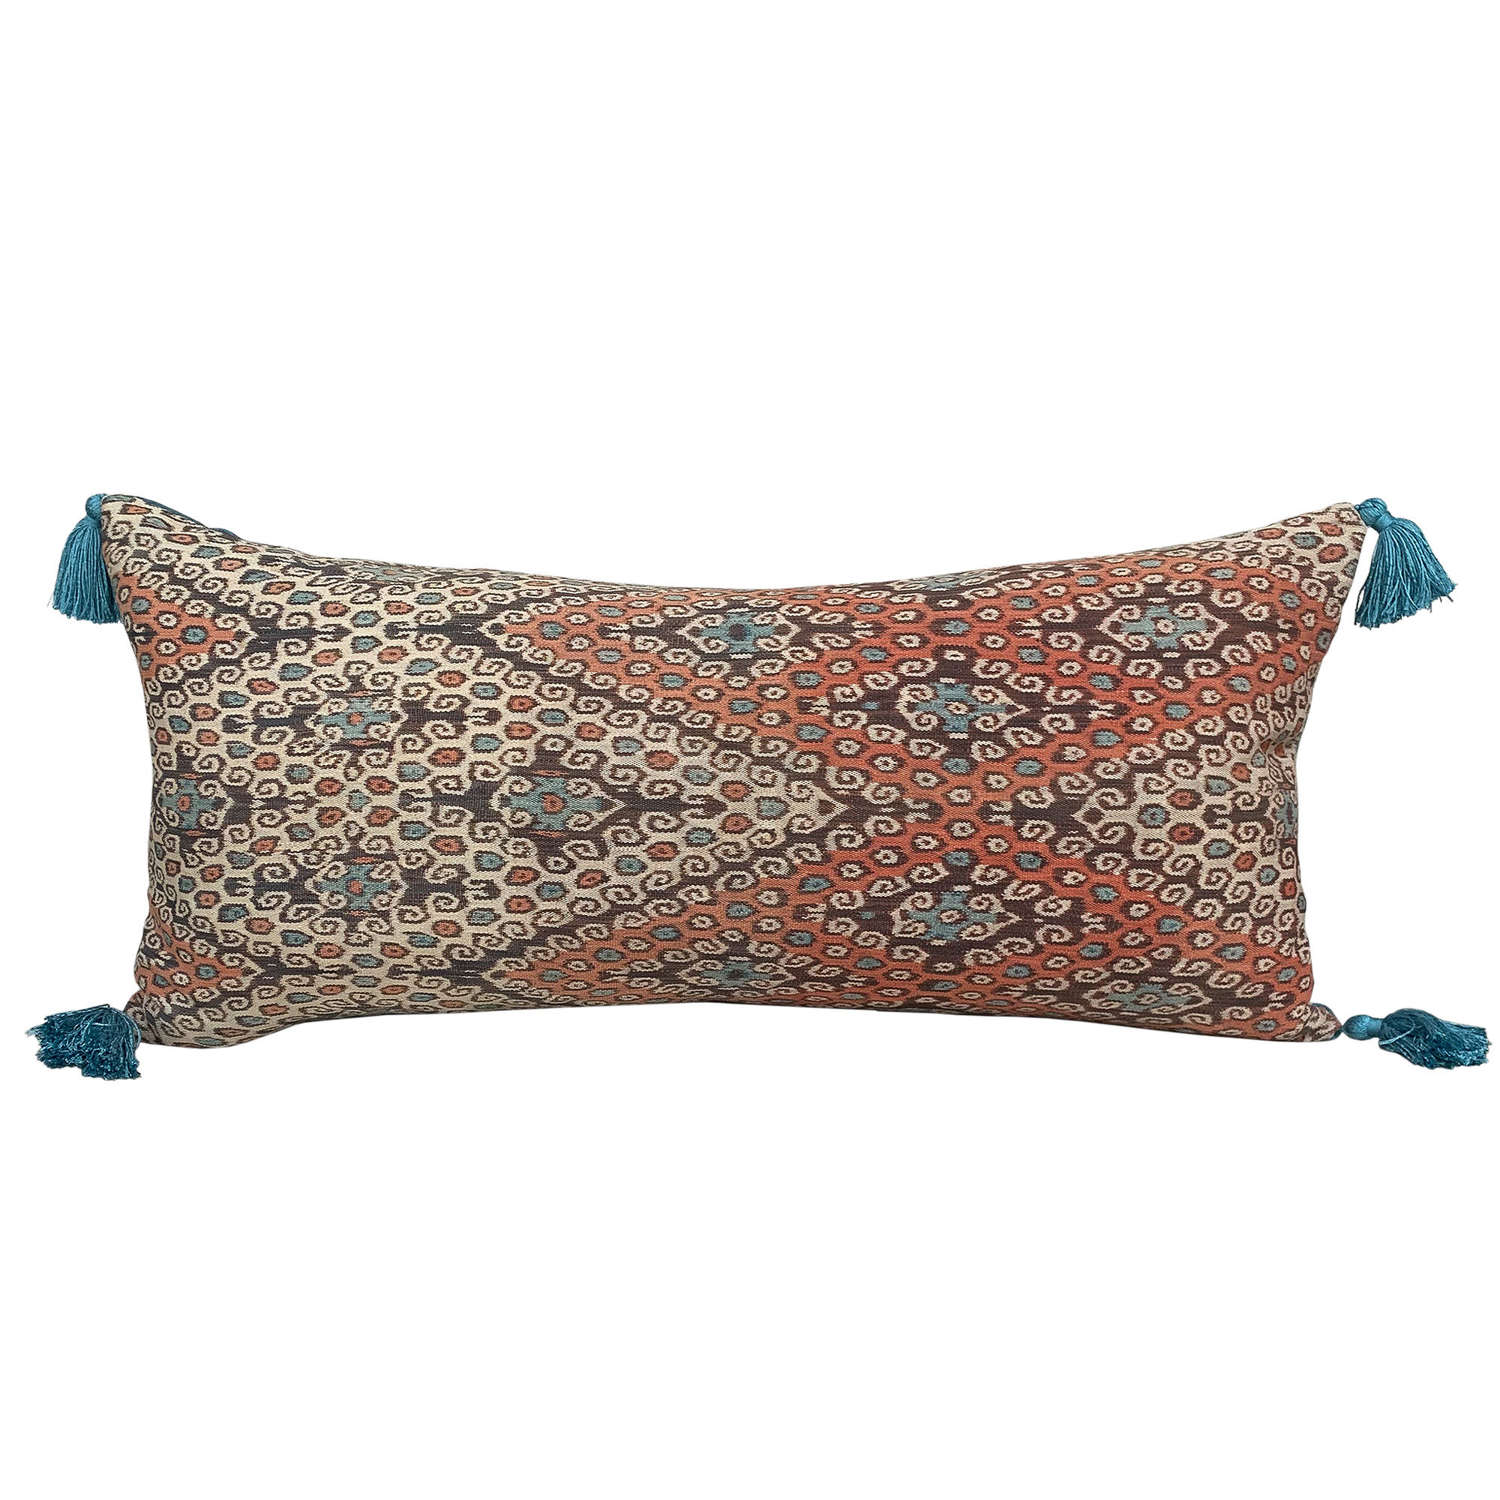 Timor futus cushion with teal tassels